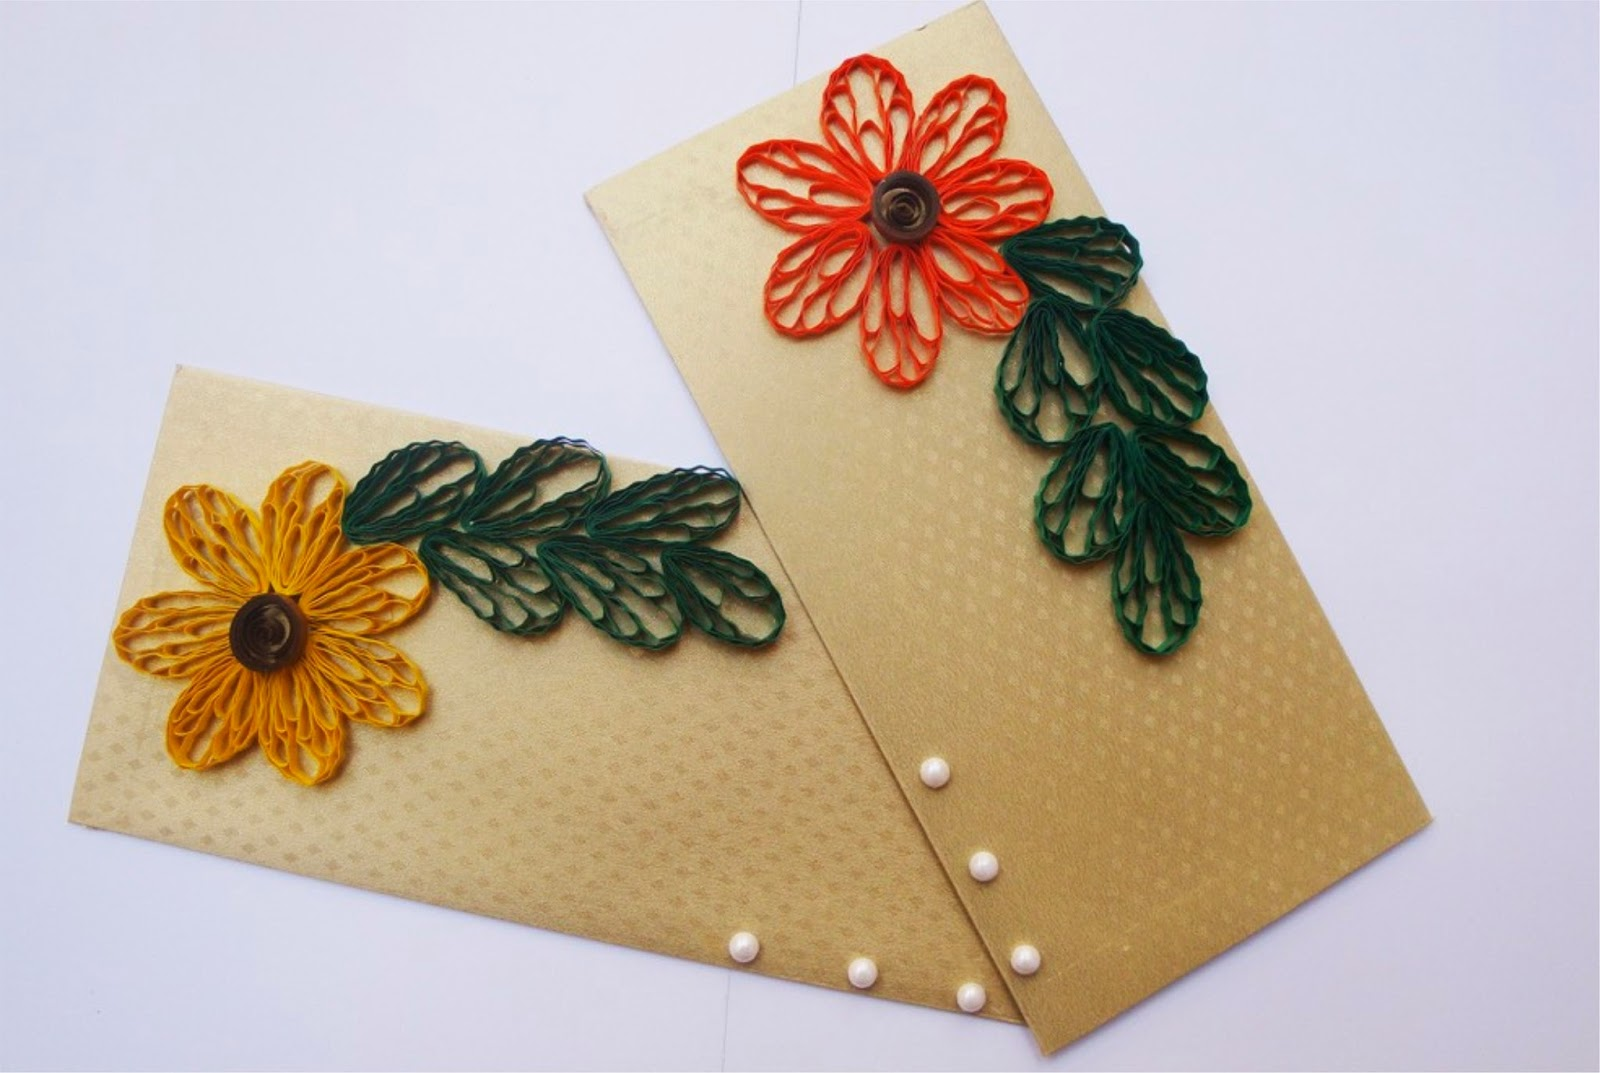 Paper quilling designs for envelope creative art craft for Creative paper art